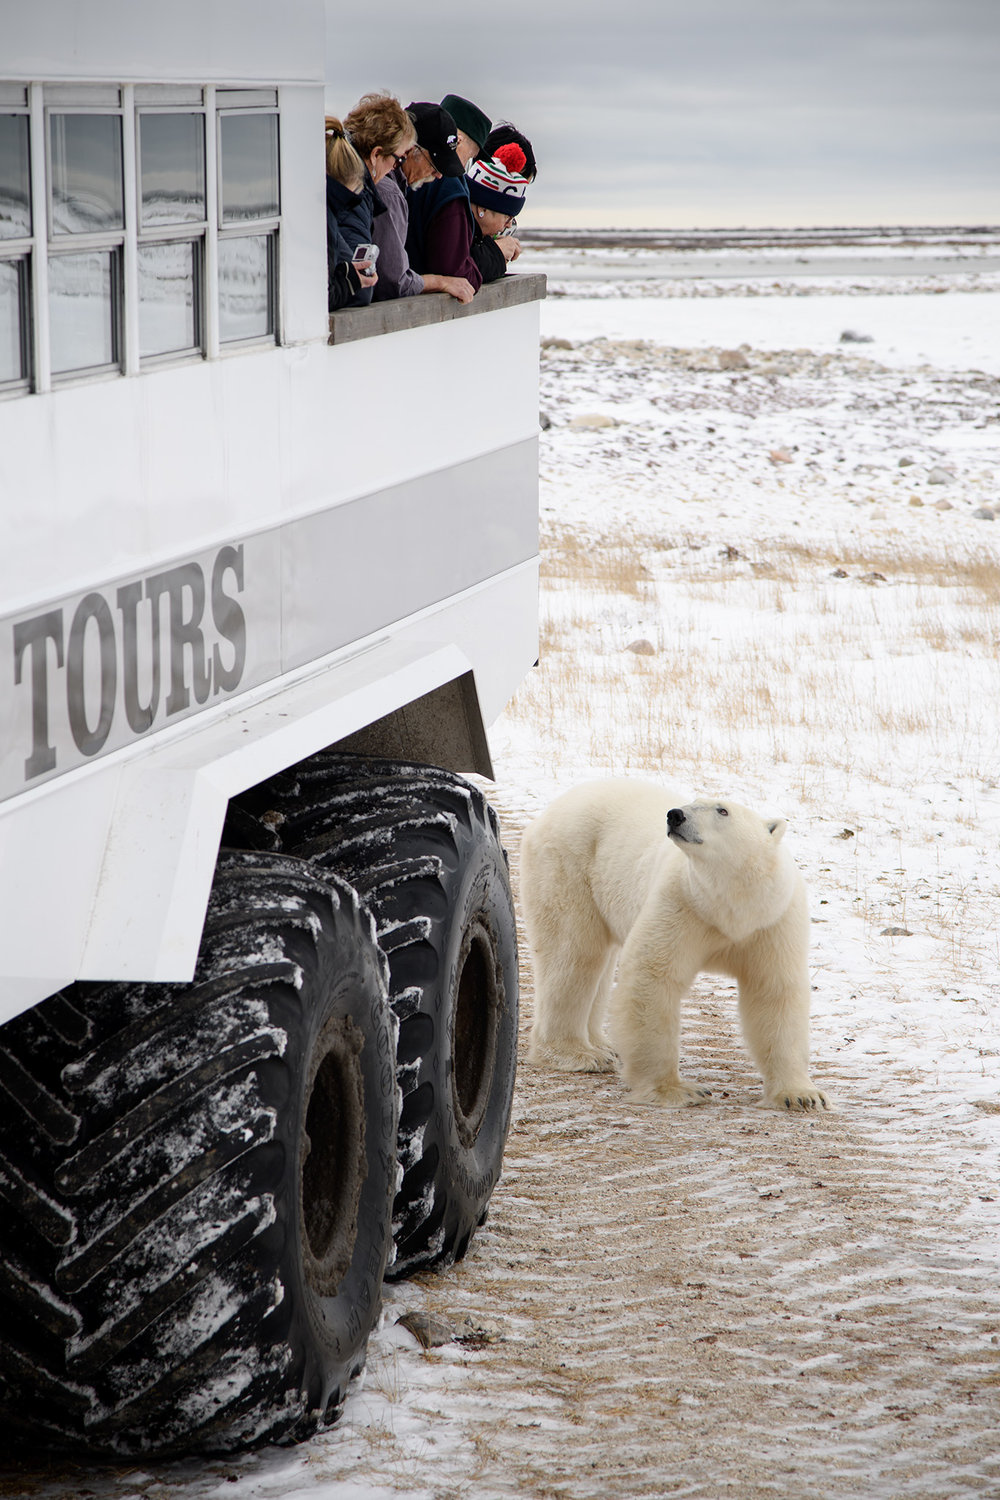 The Polar Rovers used by The Great White Bear Company to take small groups out into the Wapusk National Park allow visitors to observe bears from outdoor raised decks on the rear of the vehicle.